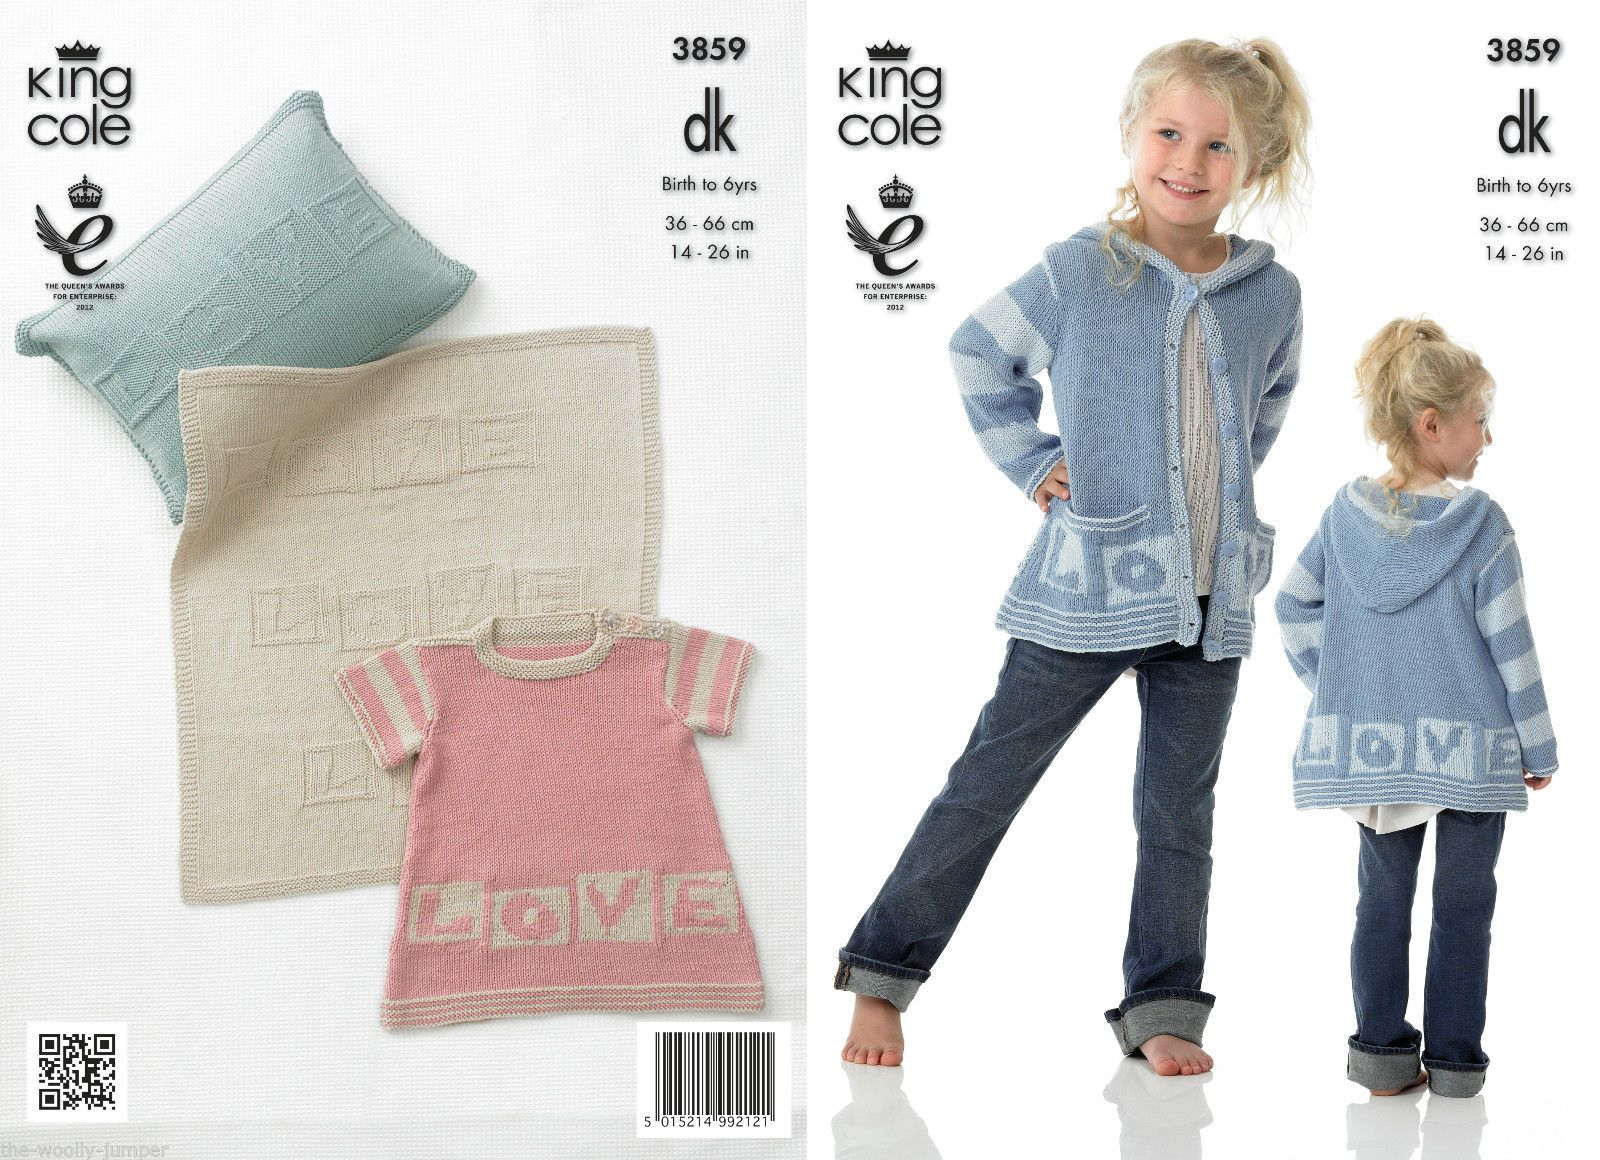 3859 - KING COLE BAMBOO COTTON DRESS HOODIE BLANKET CUSHION KNIT ...